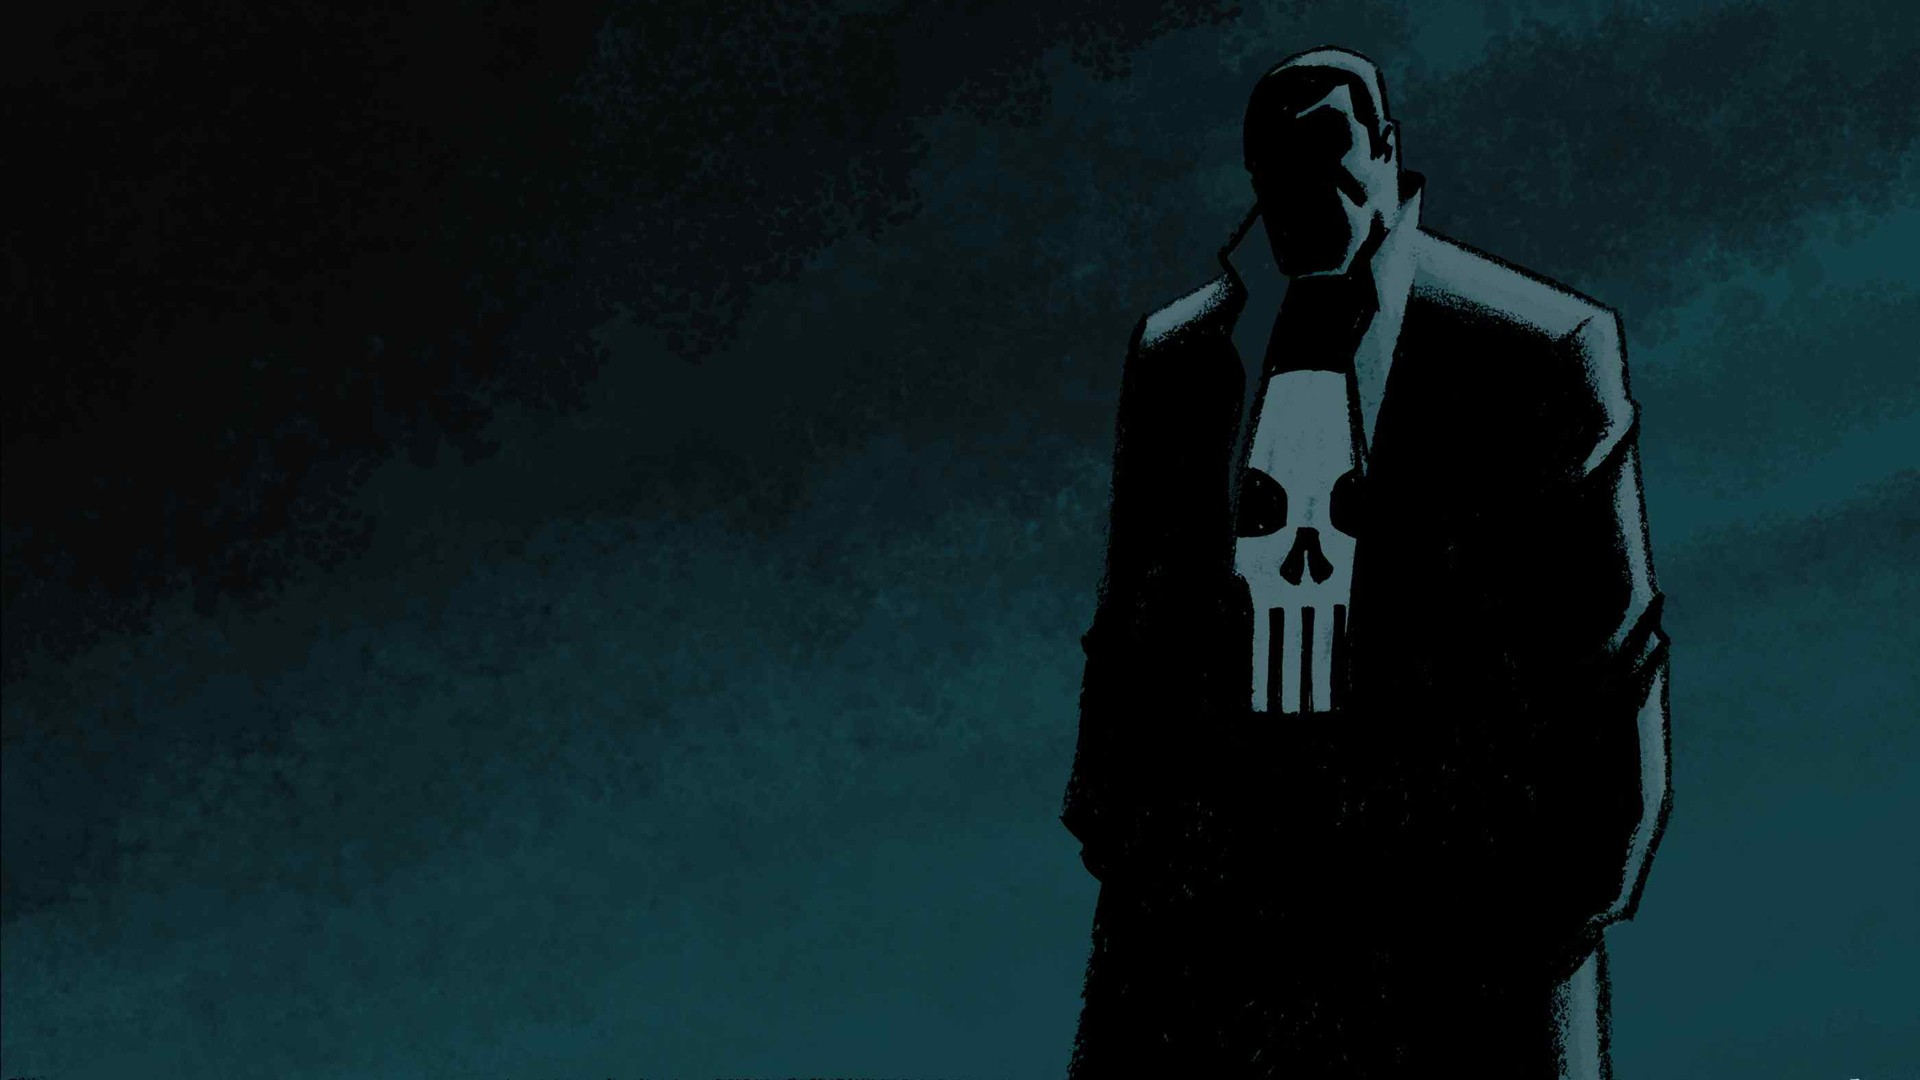 the punisher wallpaper hot hd and full view the punisher wallpaper 1920x1080